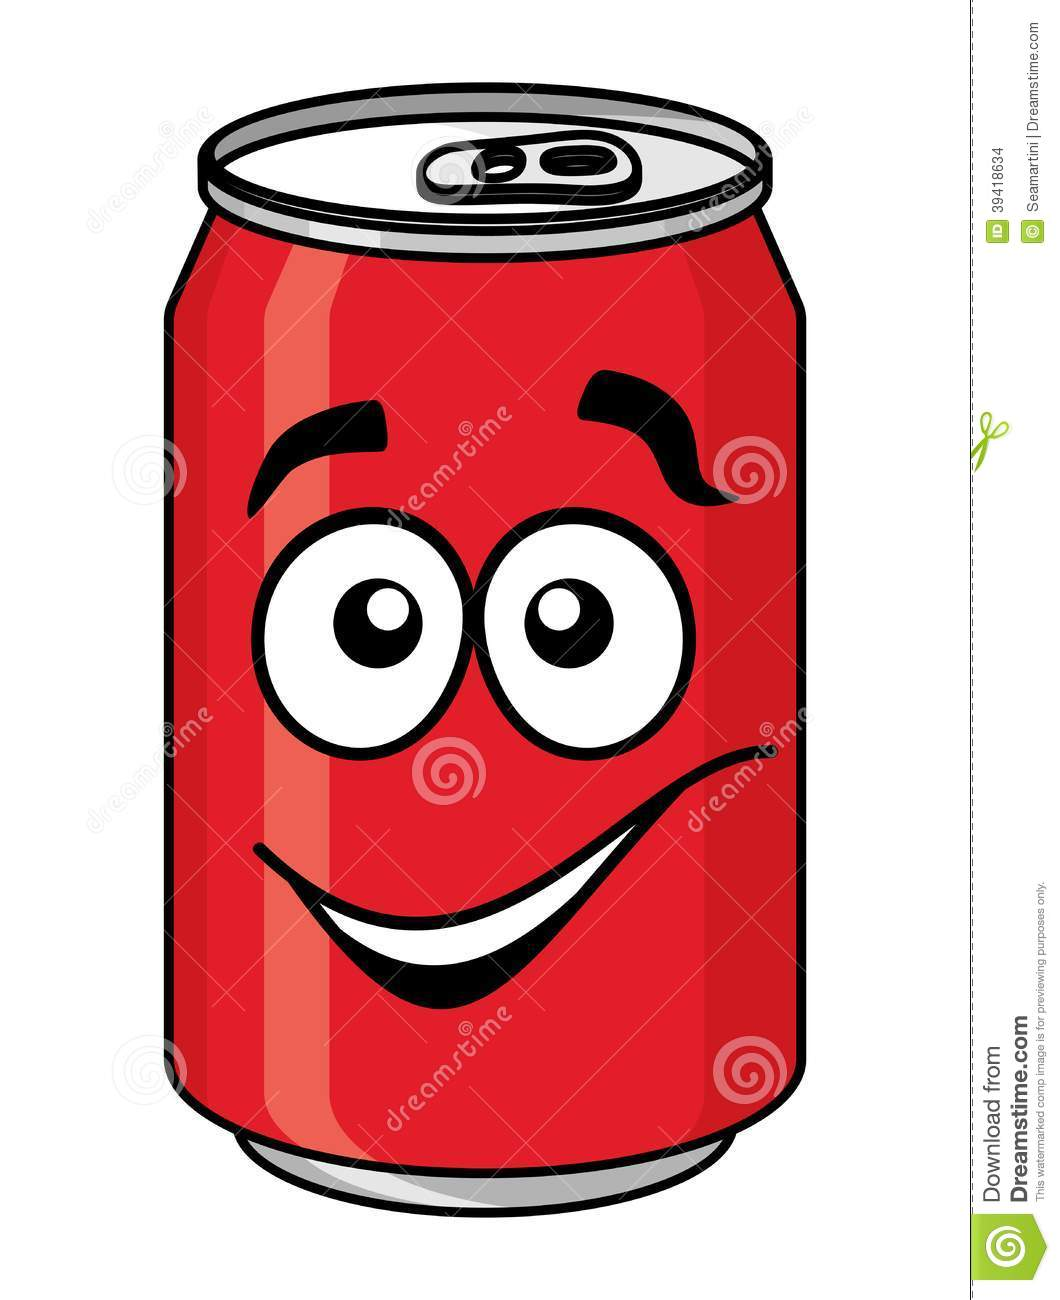 Red cartoon soda or soft drink can with a smiling face isolated on ...